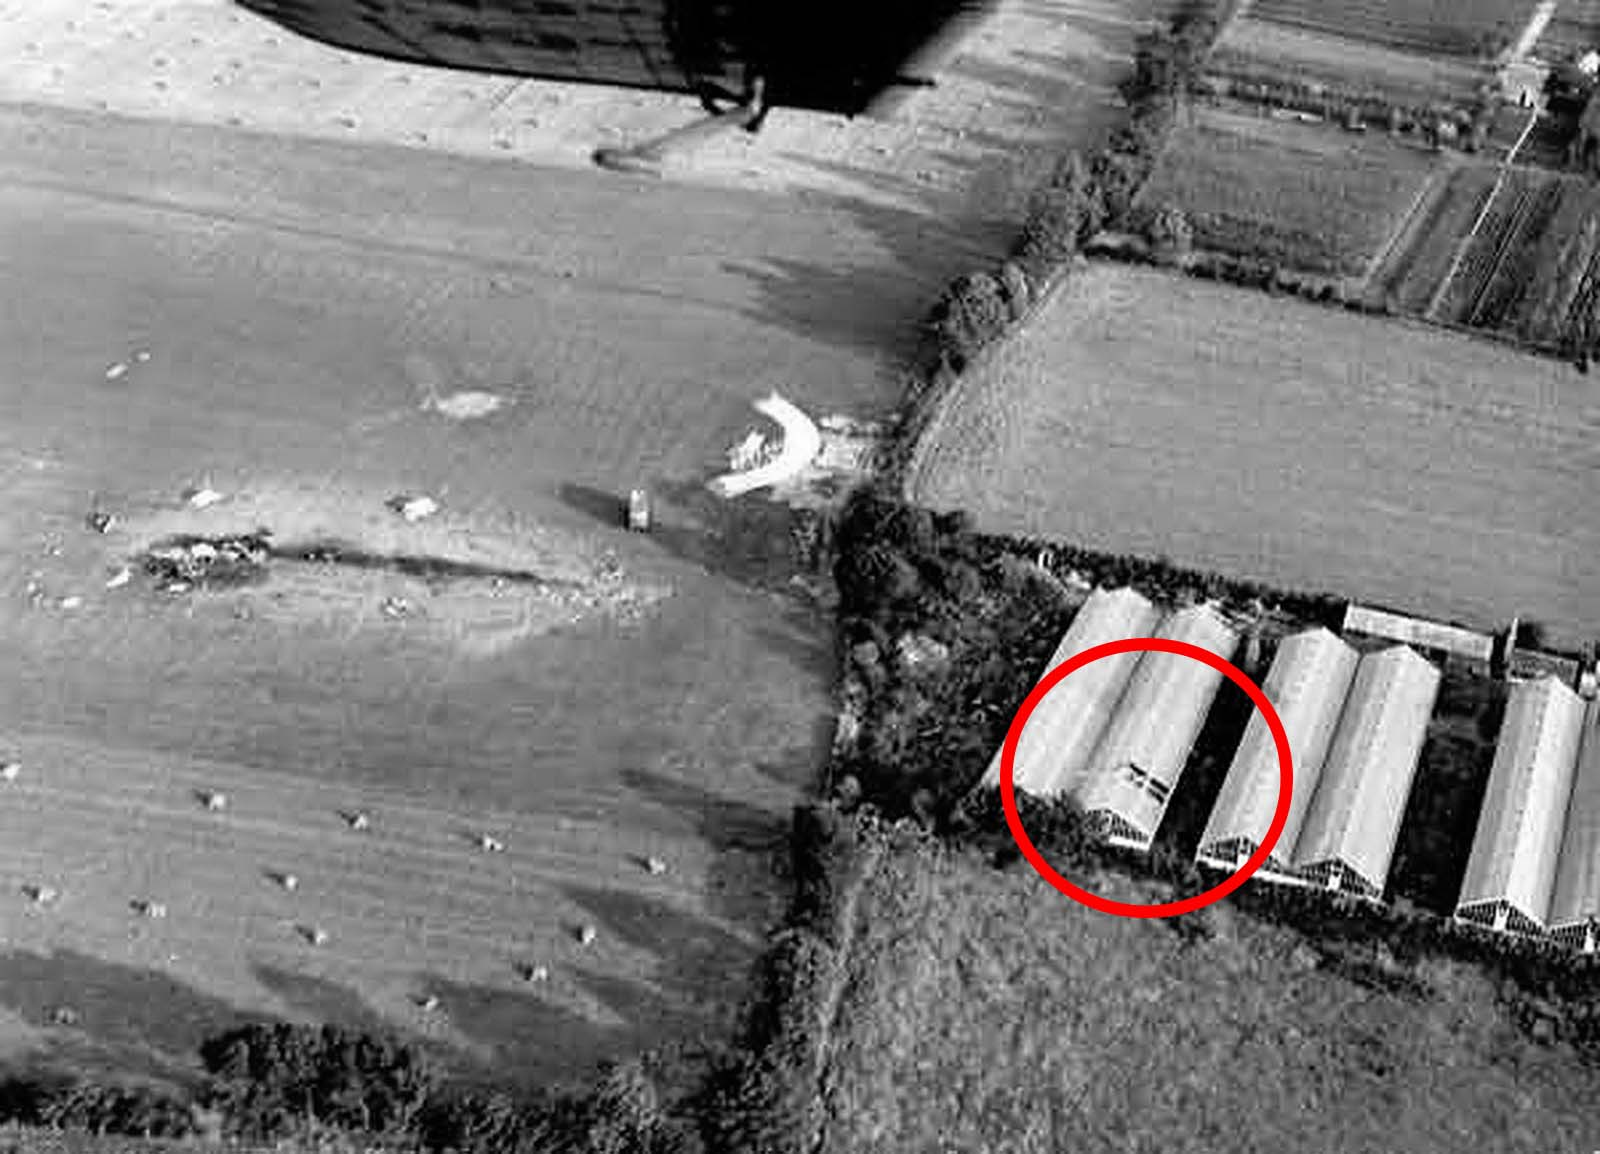 The hole where George and the ejection seat went through the glass roof can be seen in the above picture in the near end of the roof of the second greenhouse from the left.